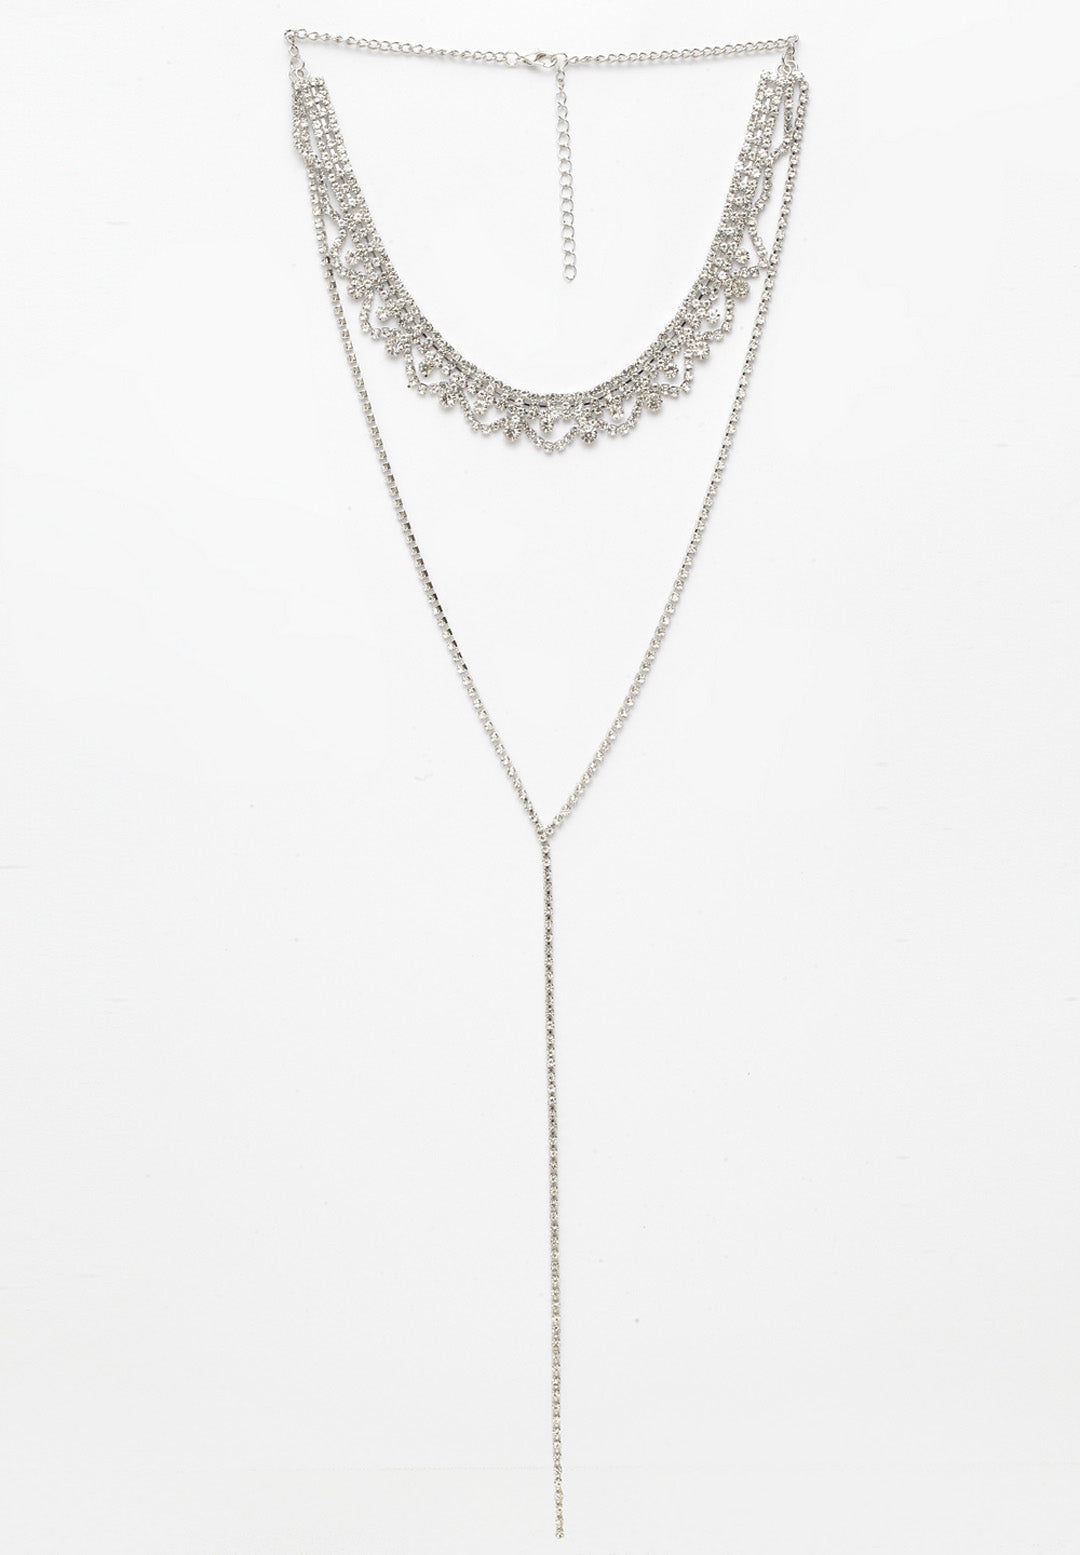 Avant-Garde Paris Contemporary Crystal Bling Neck Jewellery